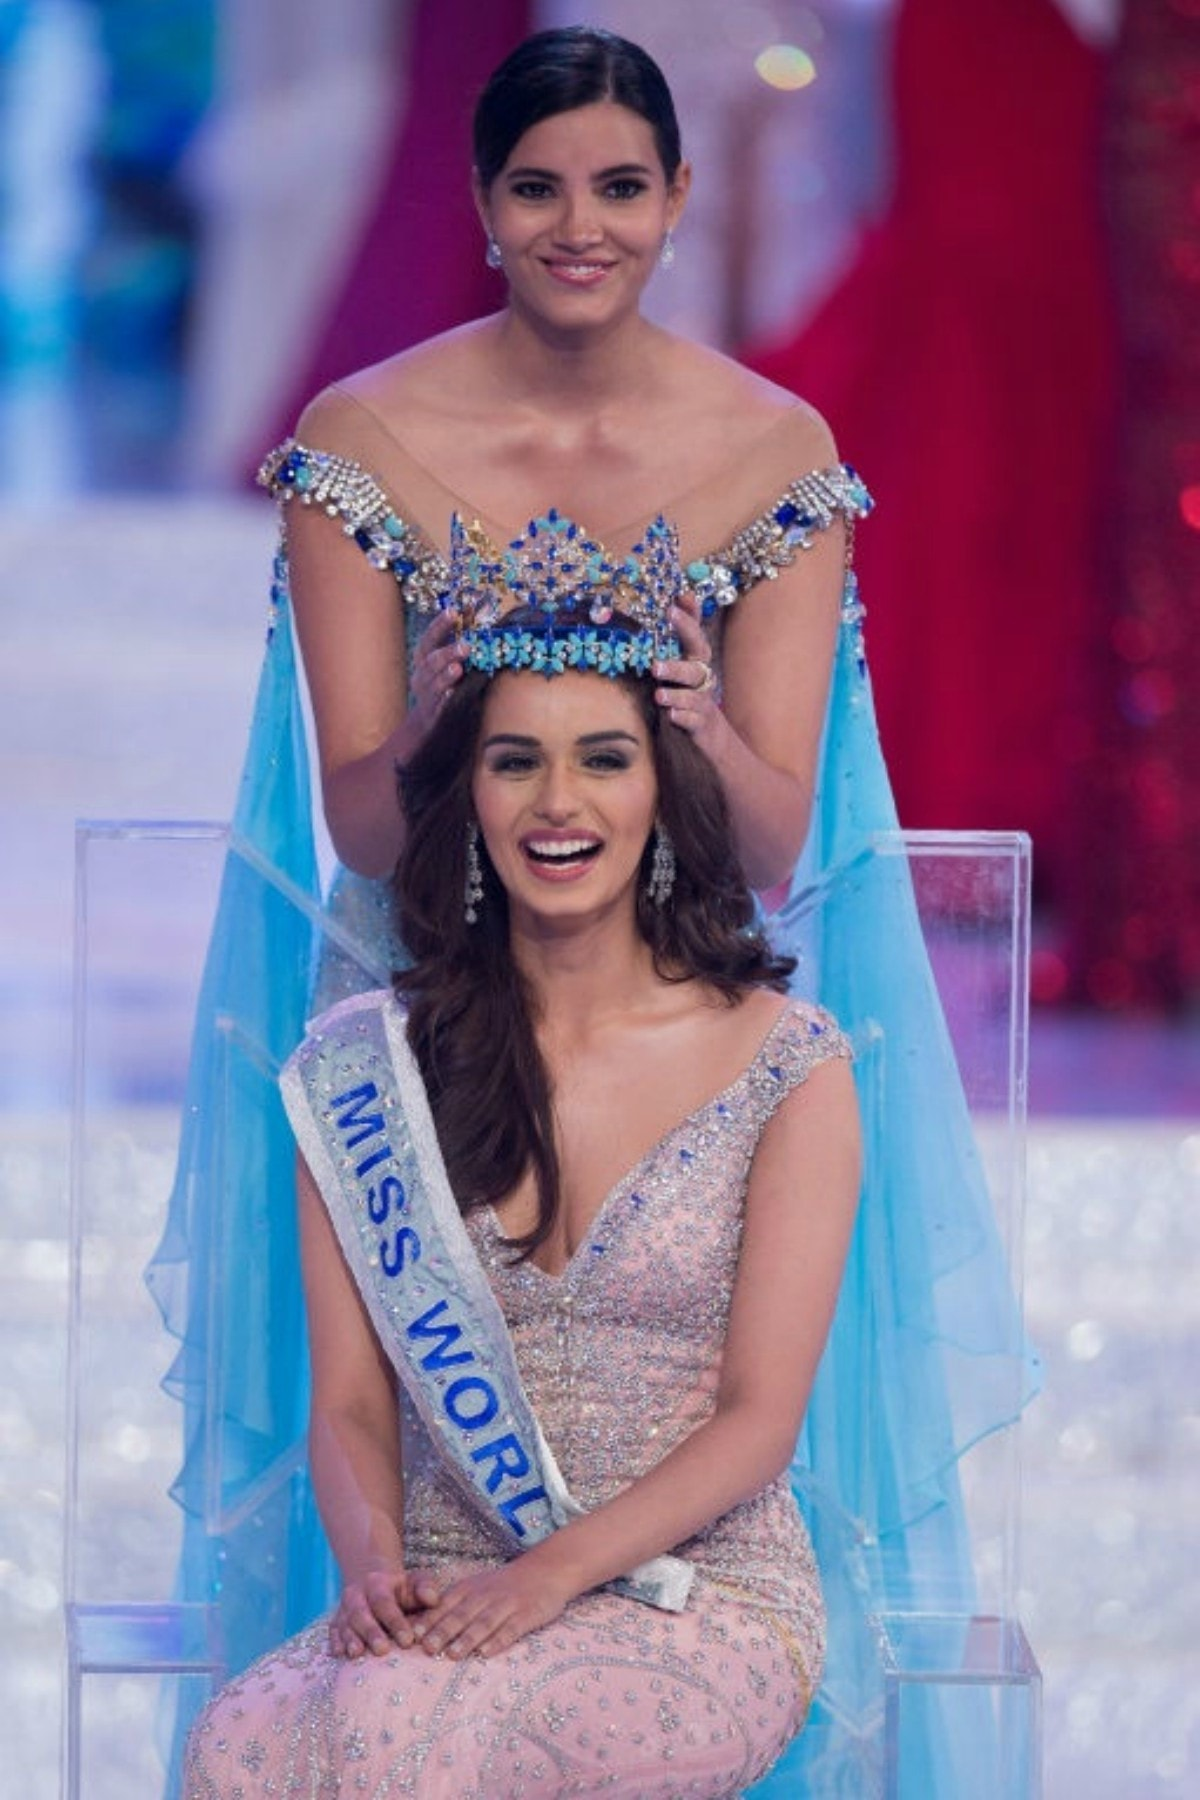 Chhillar was handed the crown by last year's winner, Stephanie del Valle of Puerto Rico — AFP